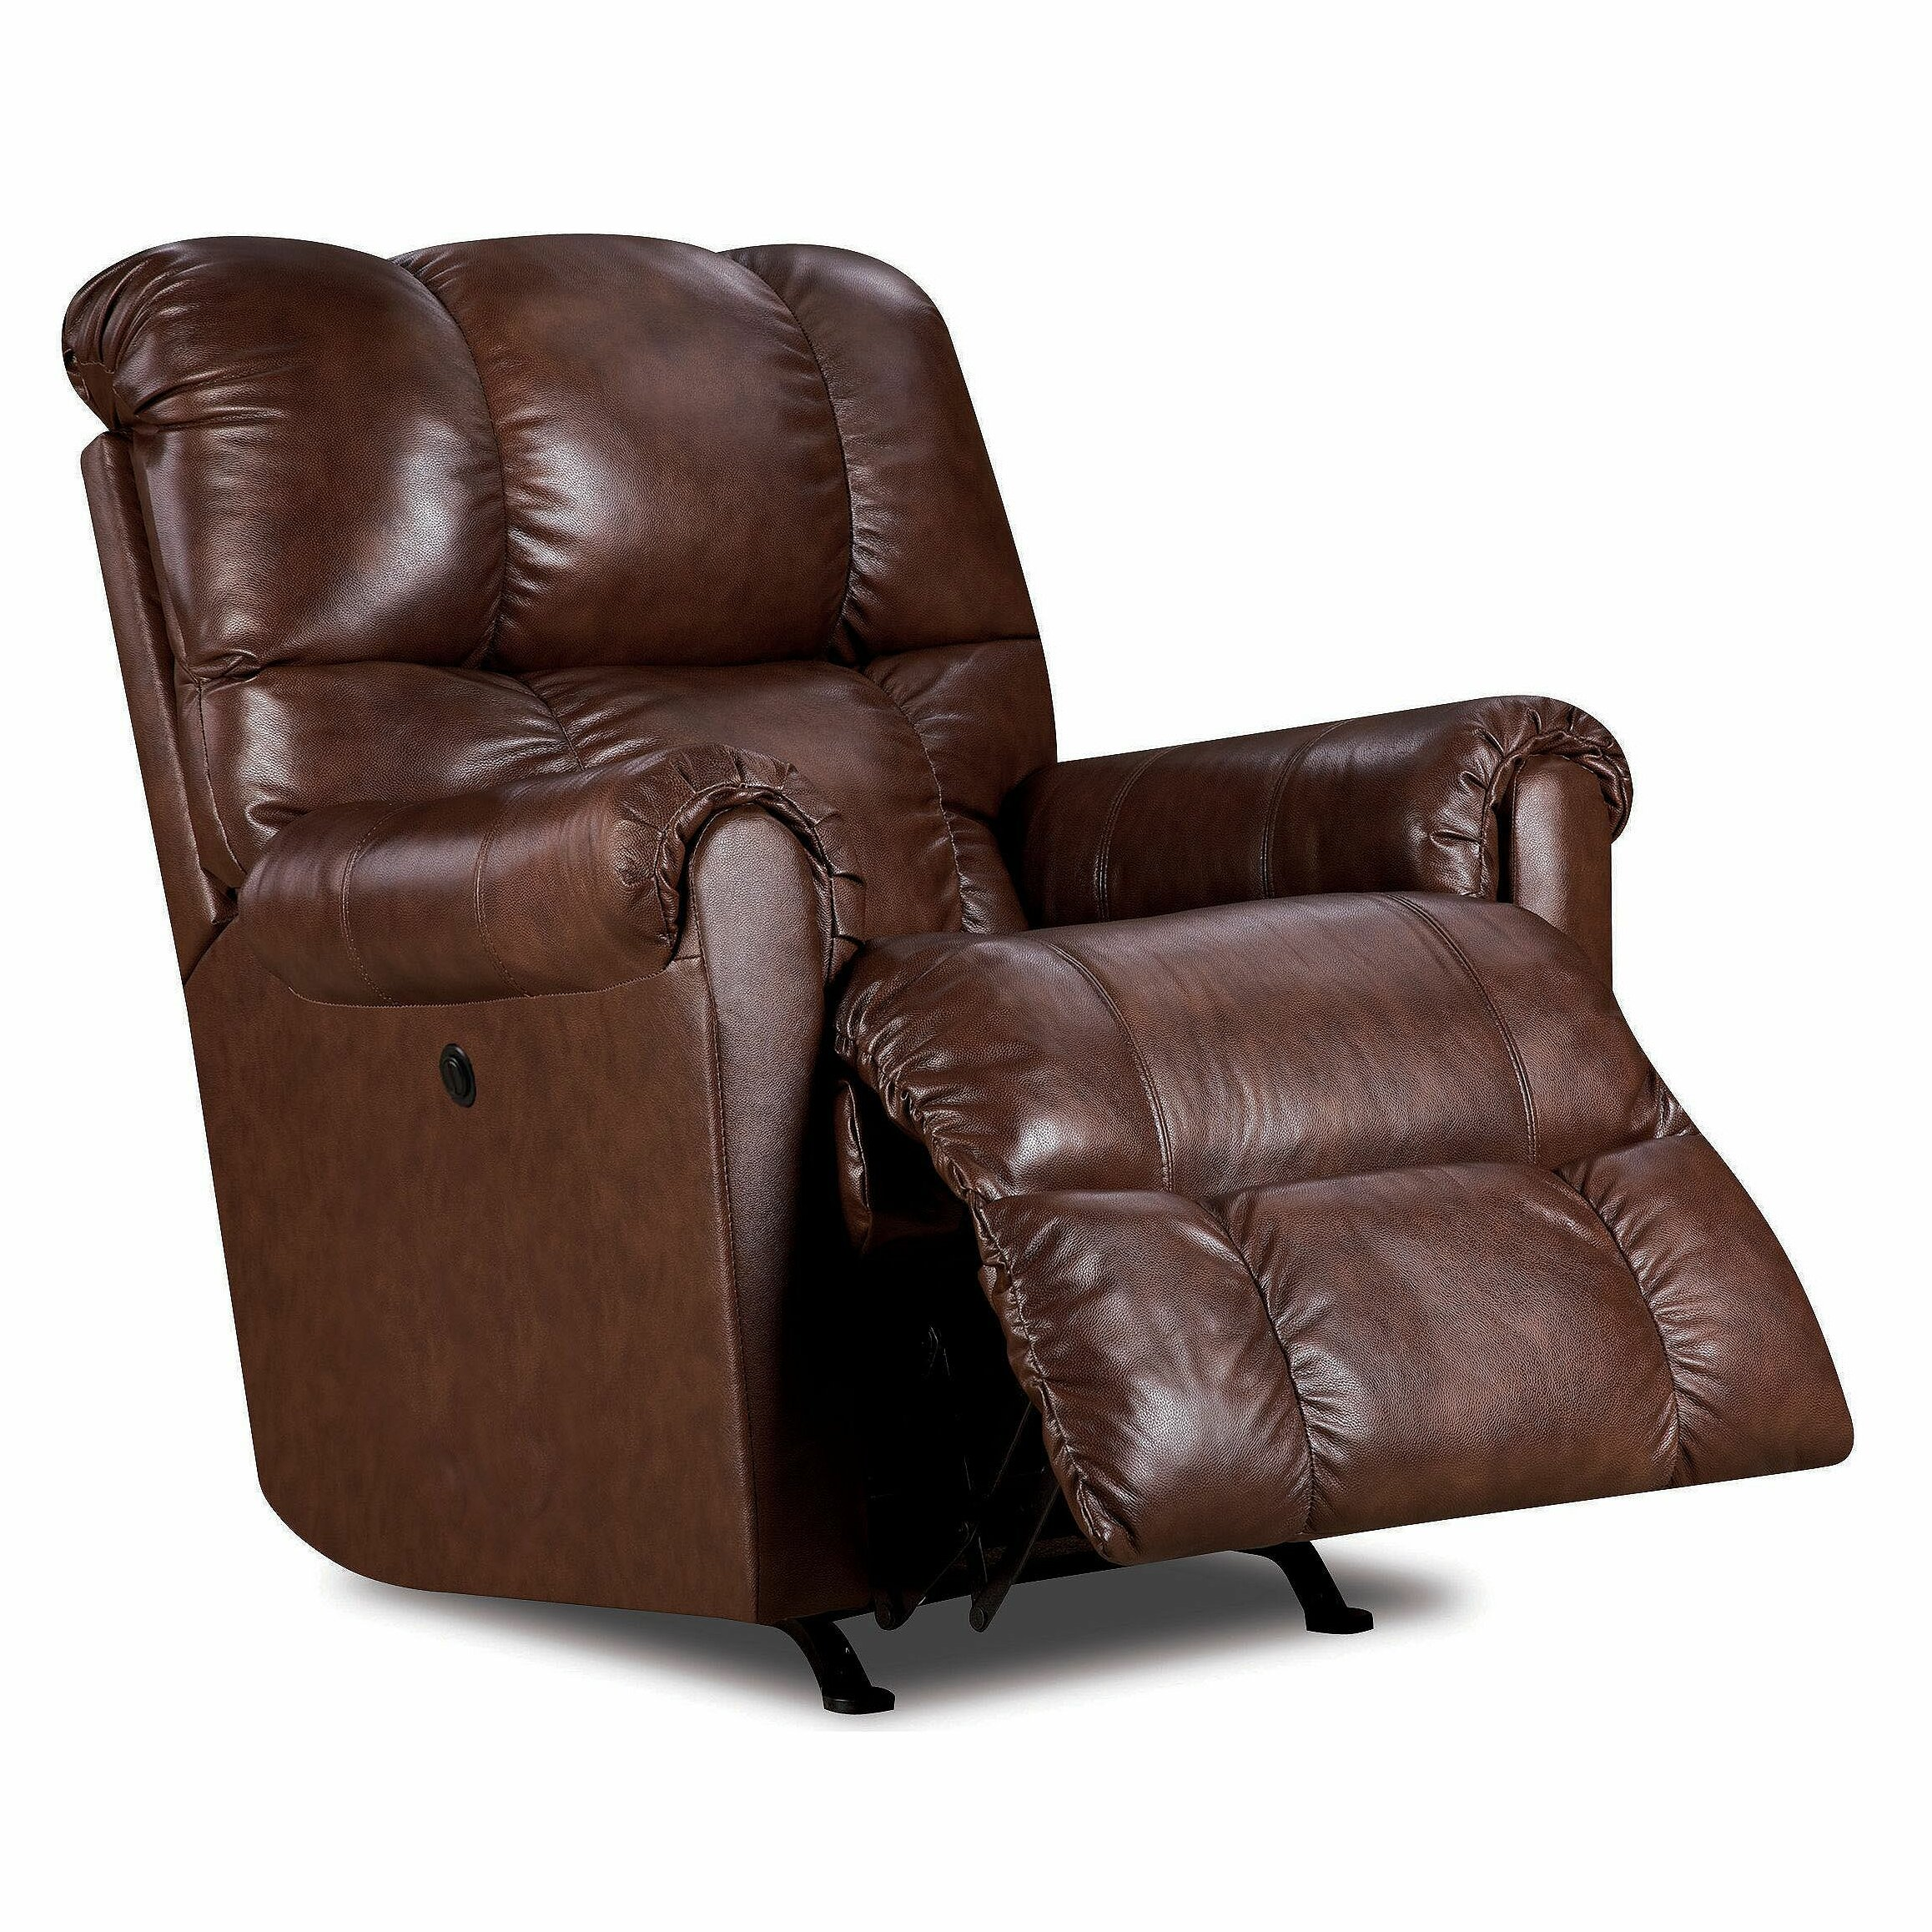 Lane furniture eureka recliner for Lane furniture